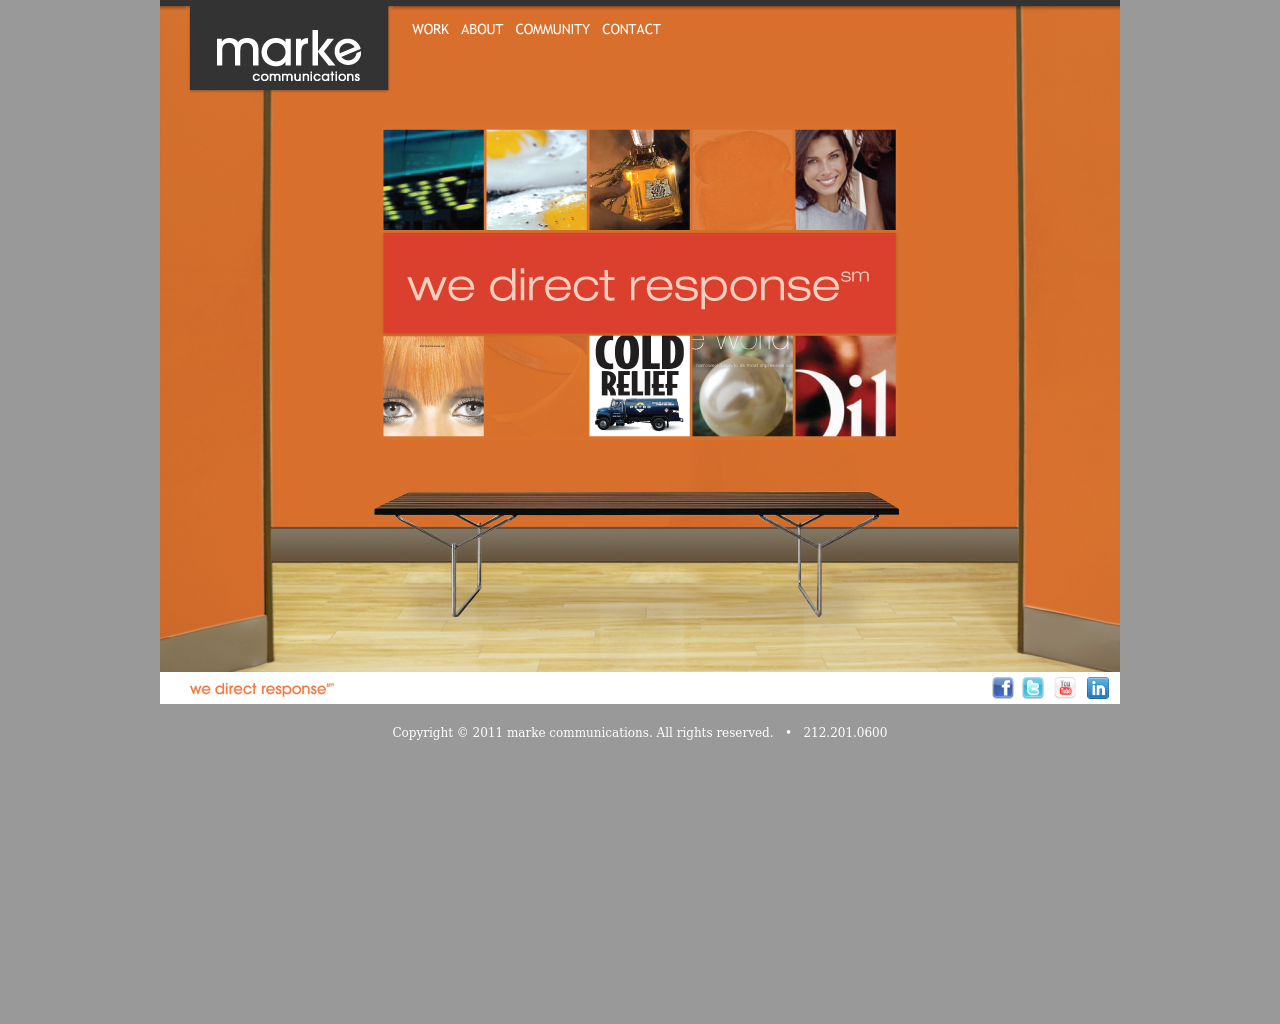 Marke-Communications-Advertising-Reviews-Pricing